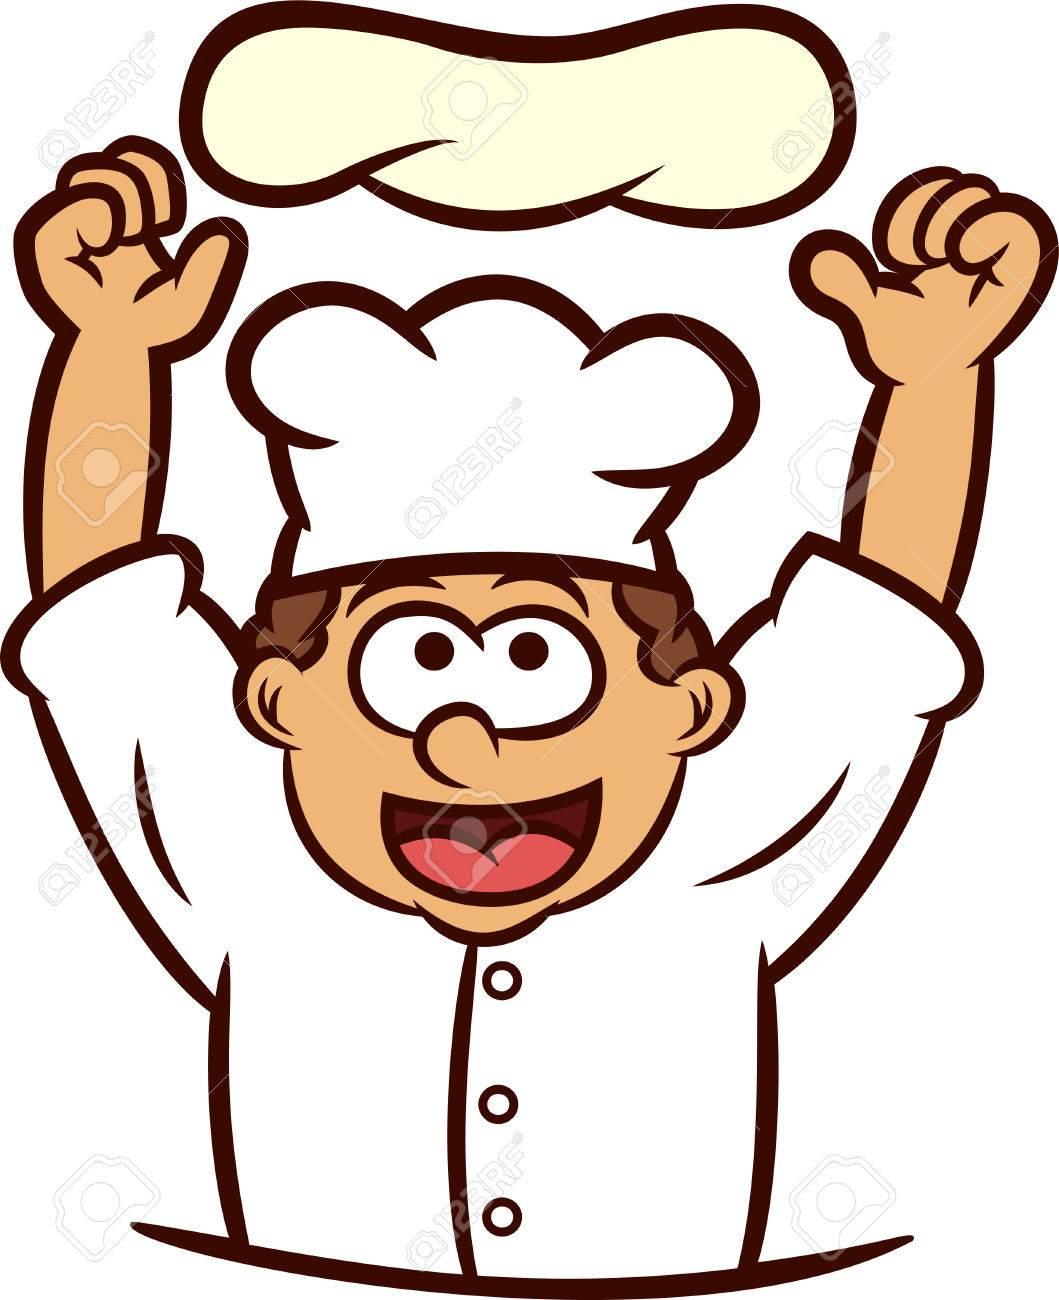 pizza chef tossing dough into the air cartoon illustration royalty rh 123rf com Blank Pizza Clip Art Pizza Sauce Clip Art